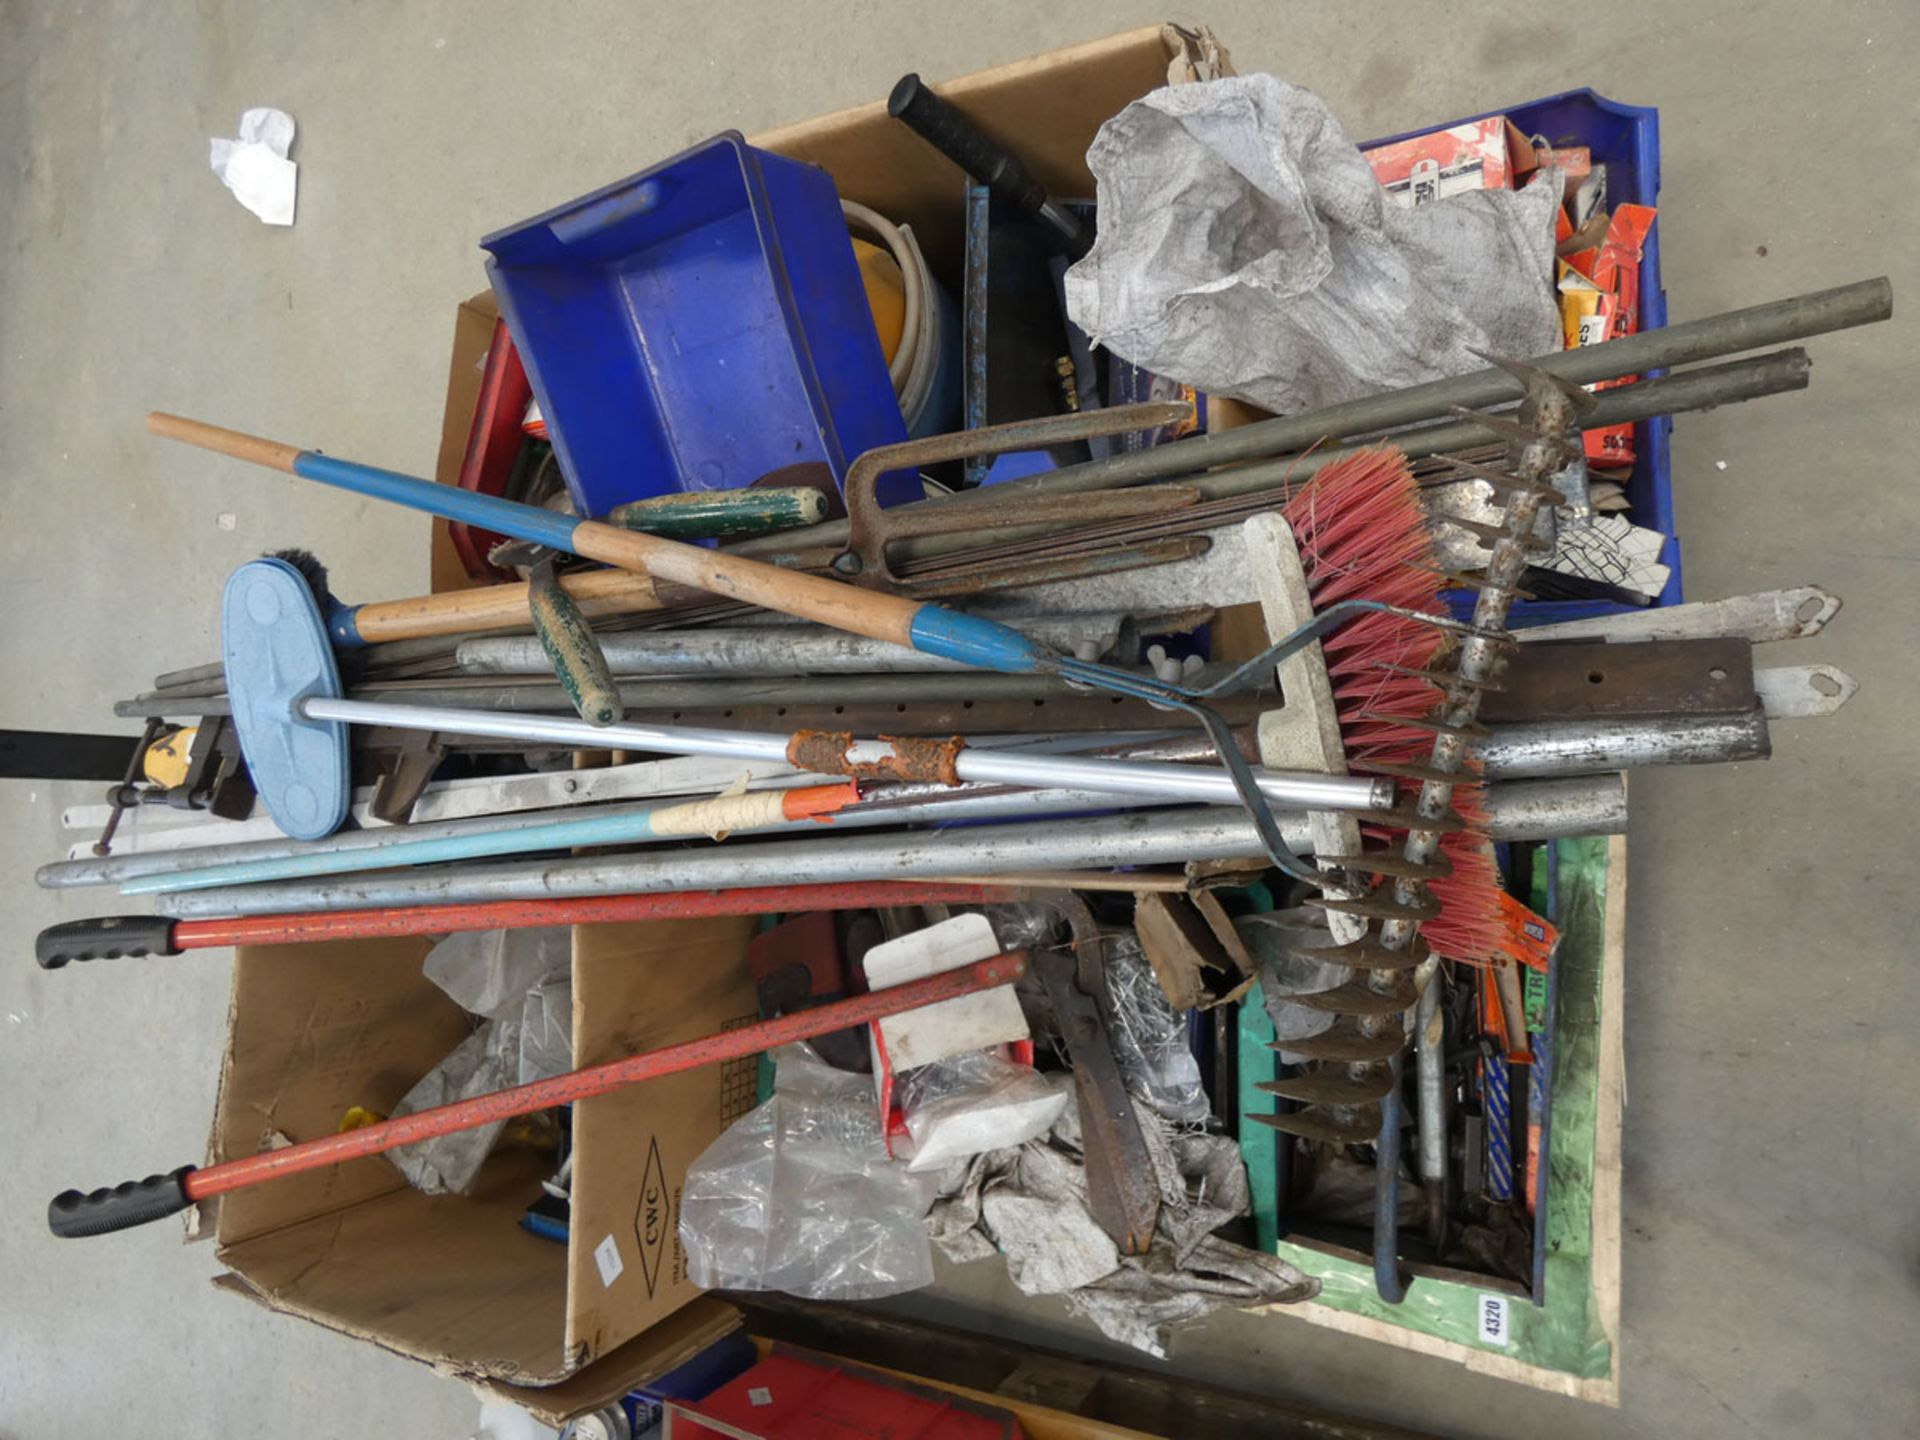 Pallet containing G clamps, garden tools, funnels, pop rivets, drill bits, motor spares, lin bins